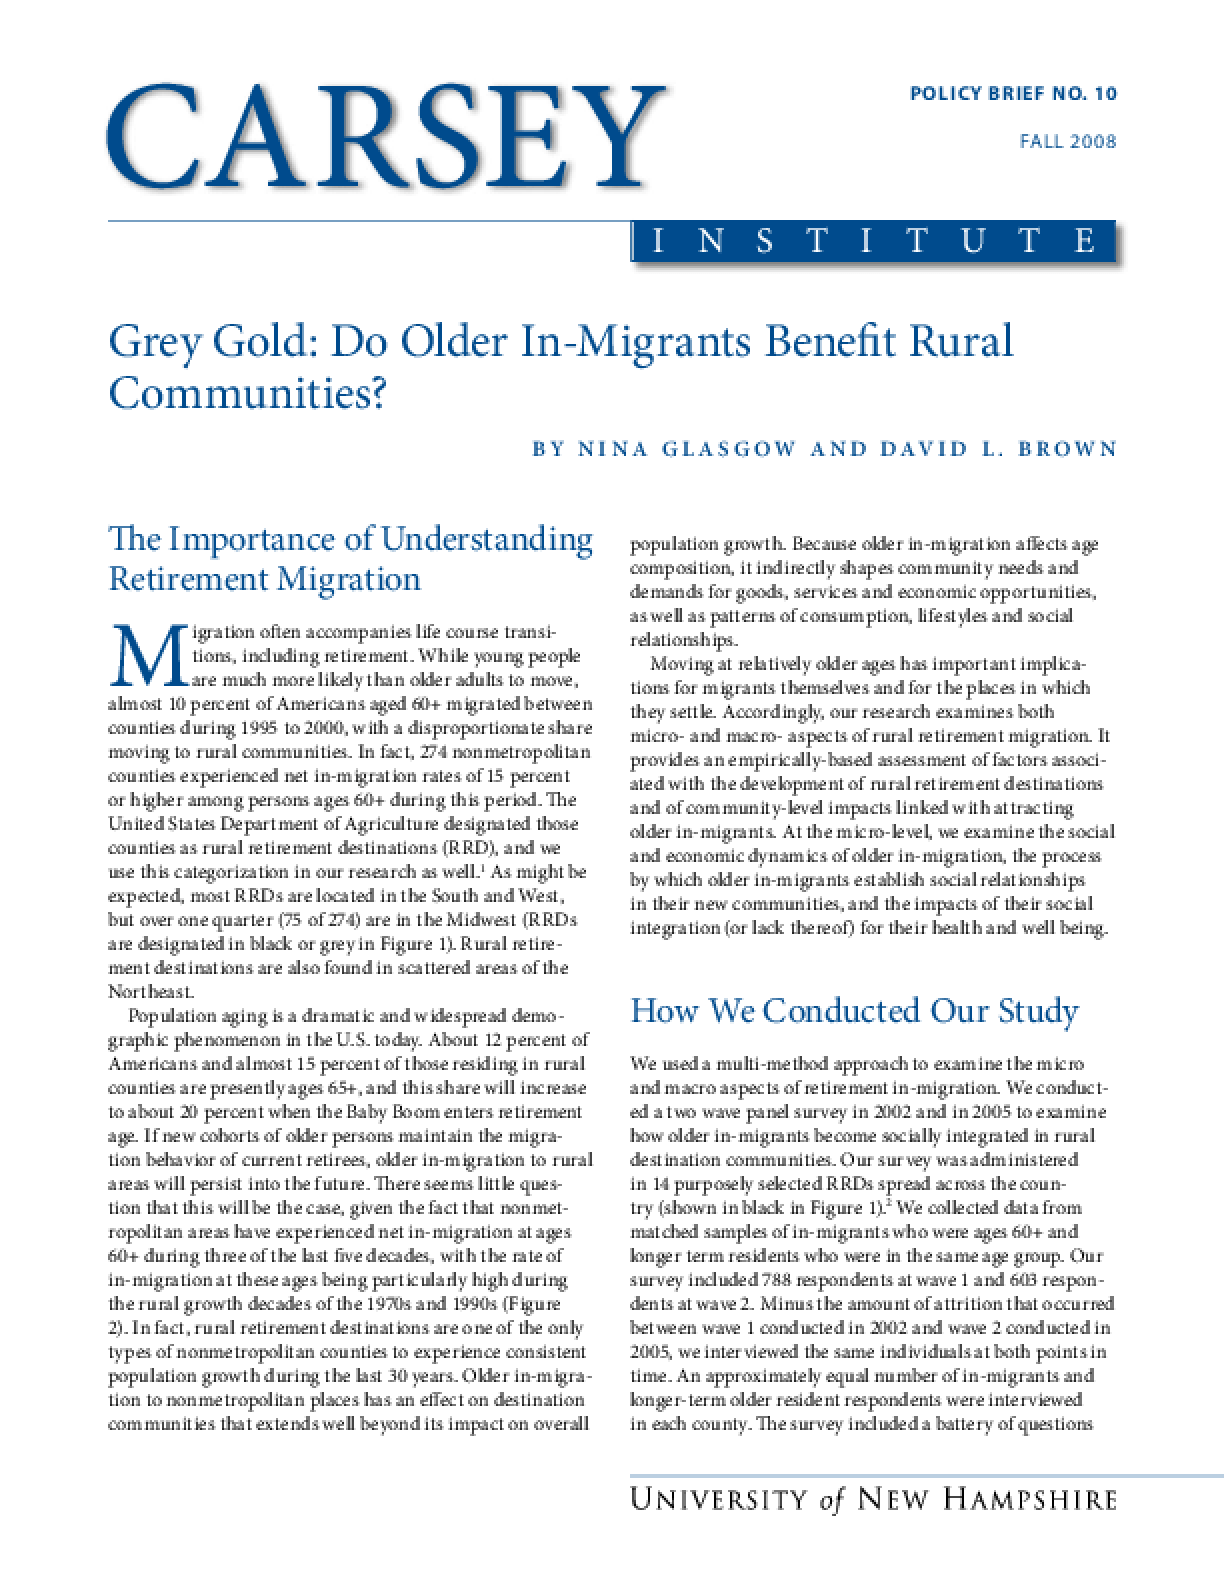 Grey Gold: Do Older In-migrants Benefit Rural Communities?